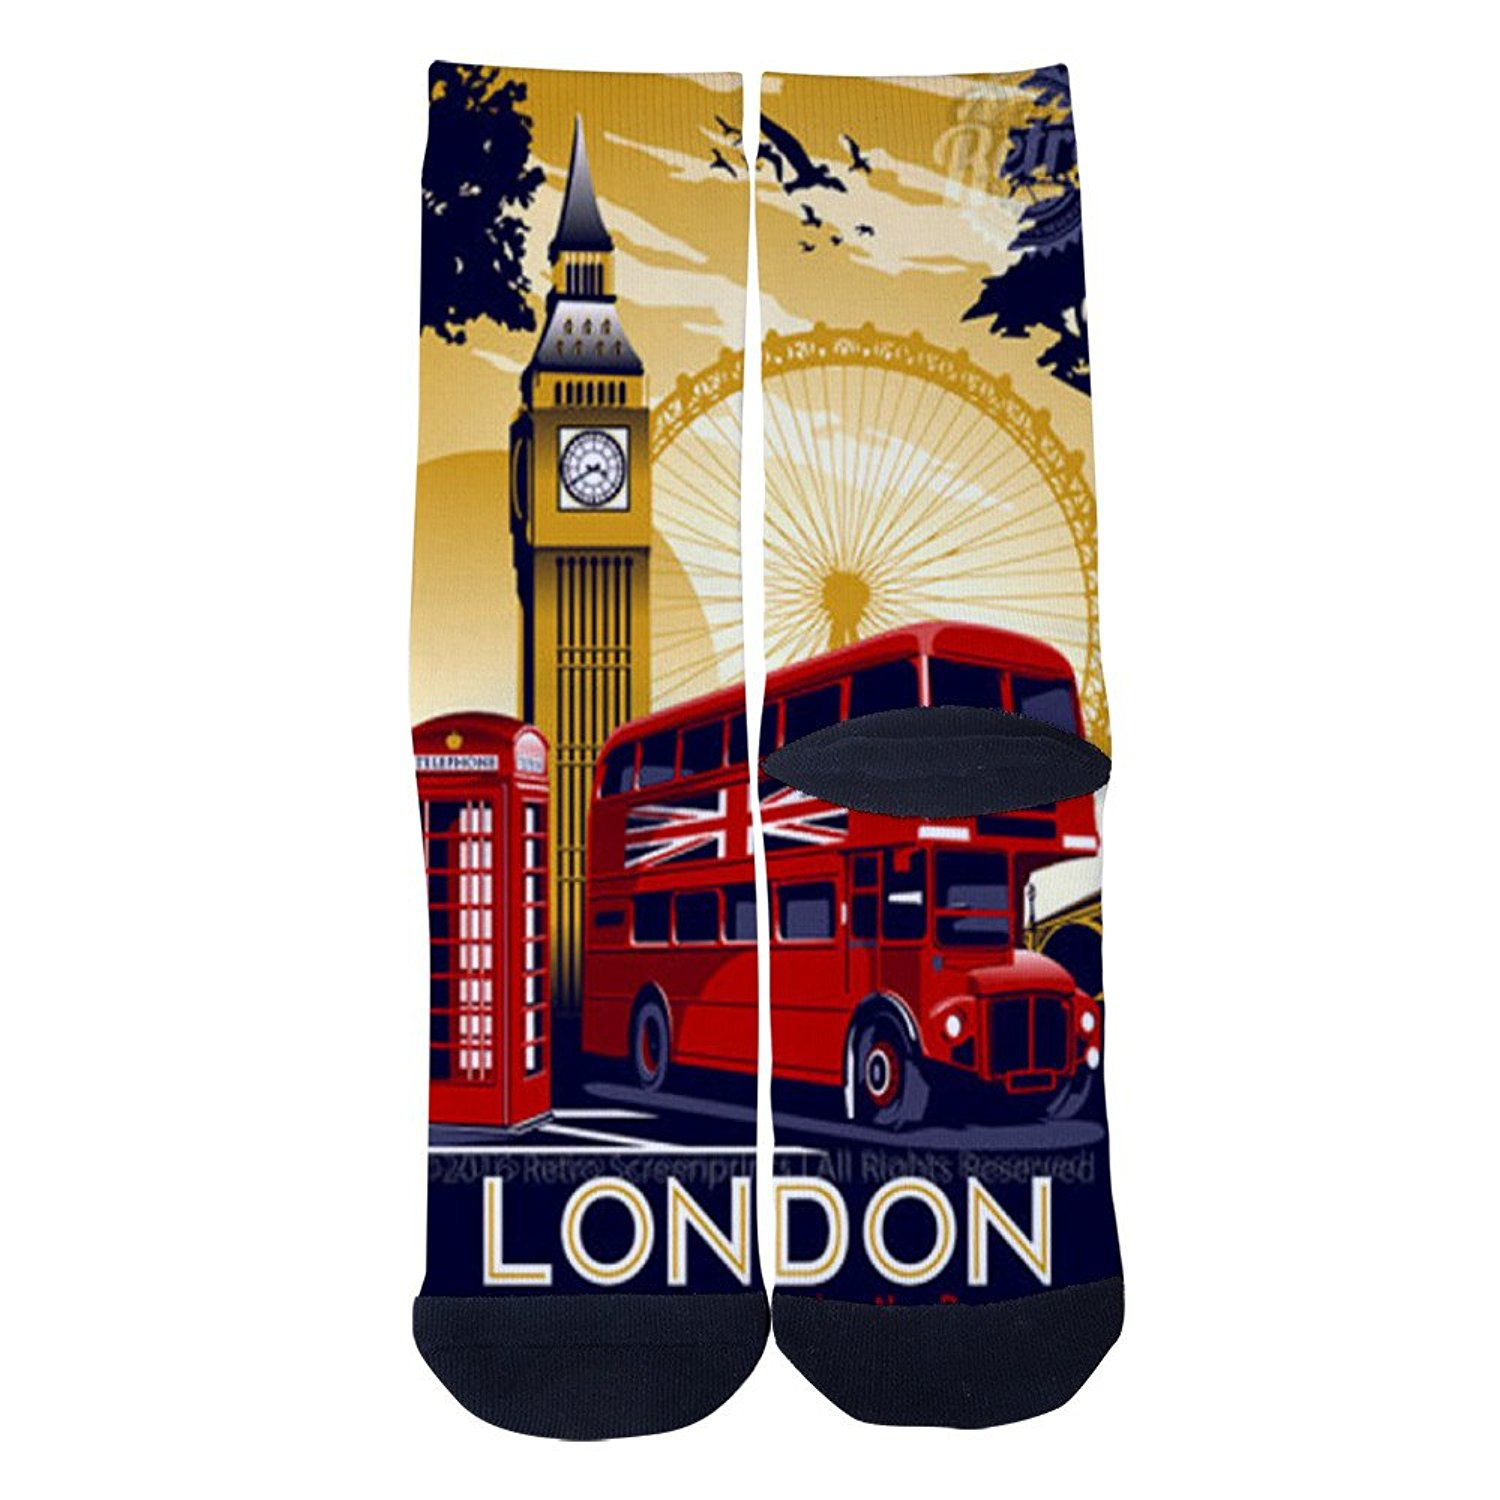 London England Custom Socks Creative Socks for Men//Women Casual Cartoon Socks